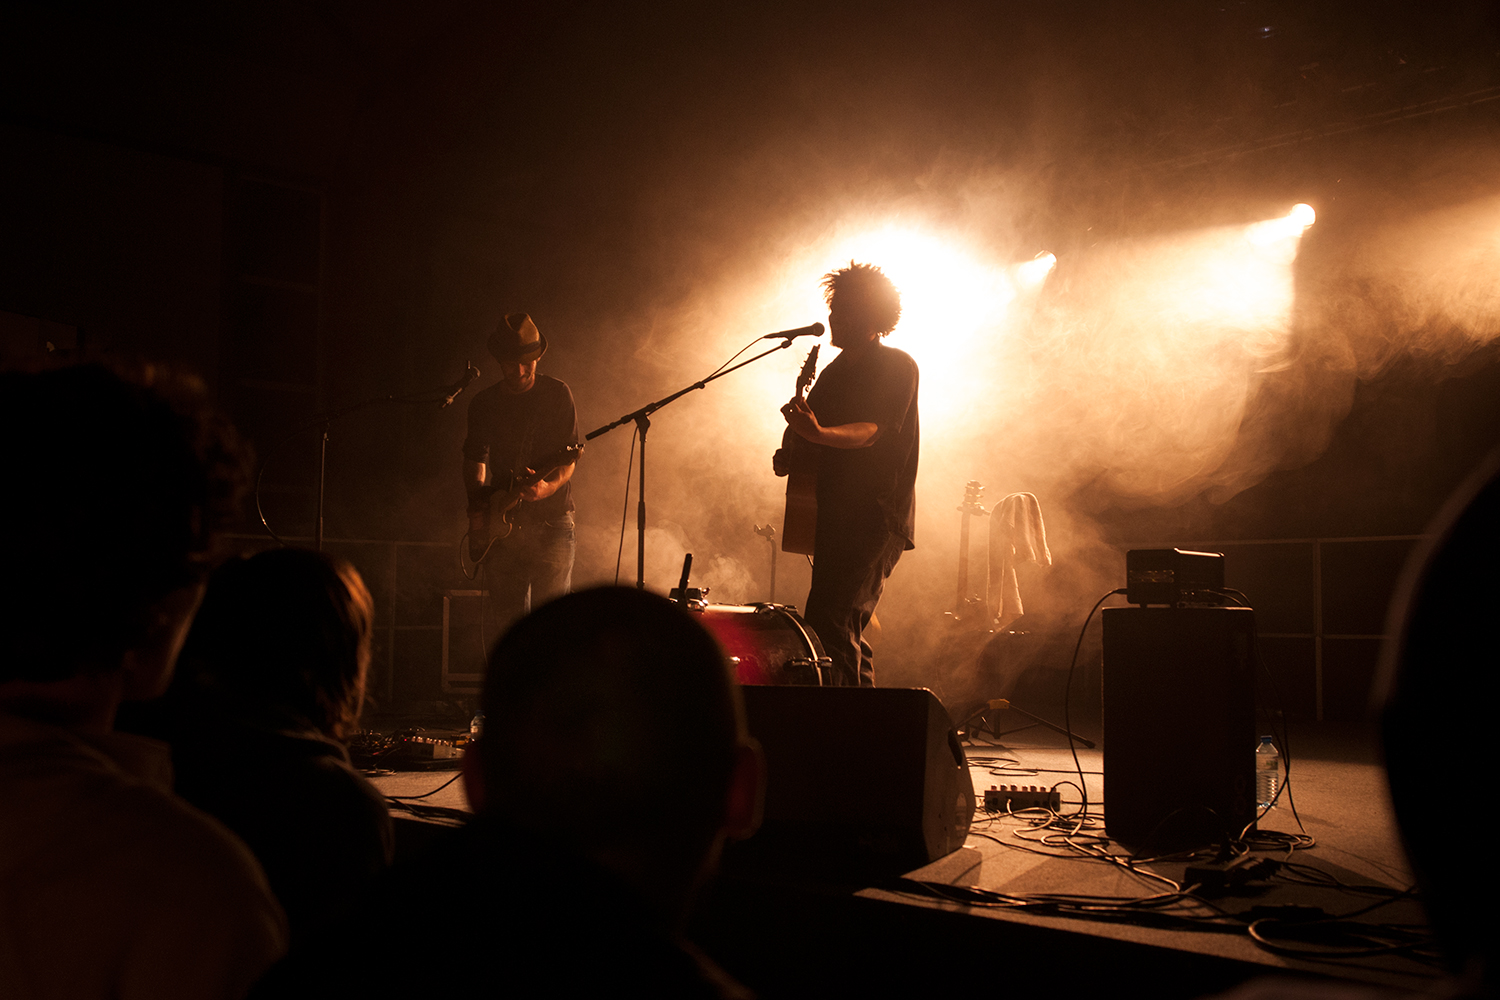 "Ledneuff  performing at the 3rd edition of 'A l'assult du son"" in Saint-Aigan-de-Grand-Lieu, March 2012."